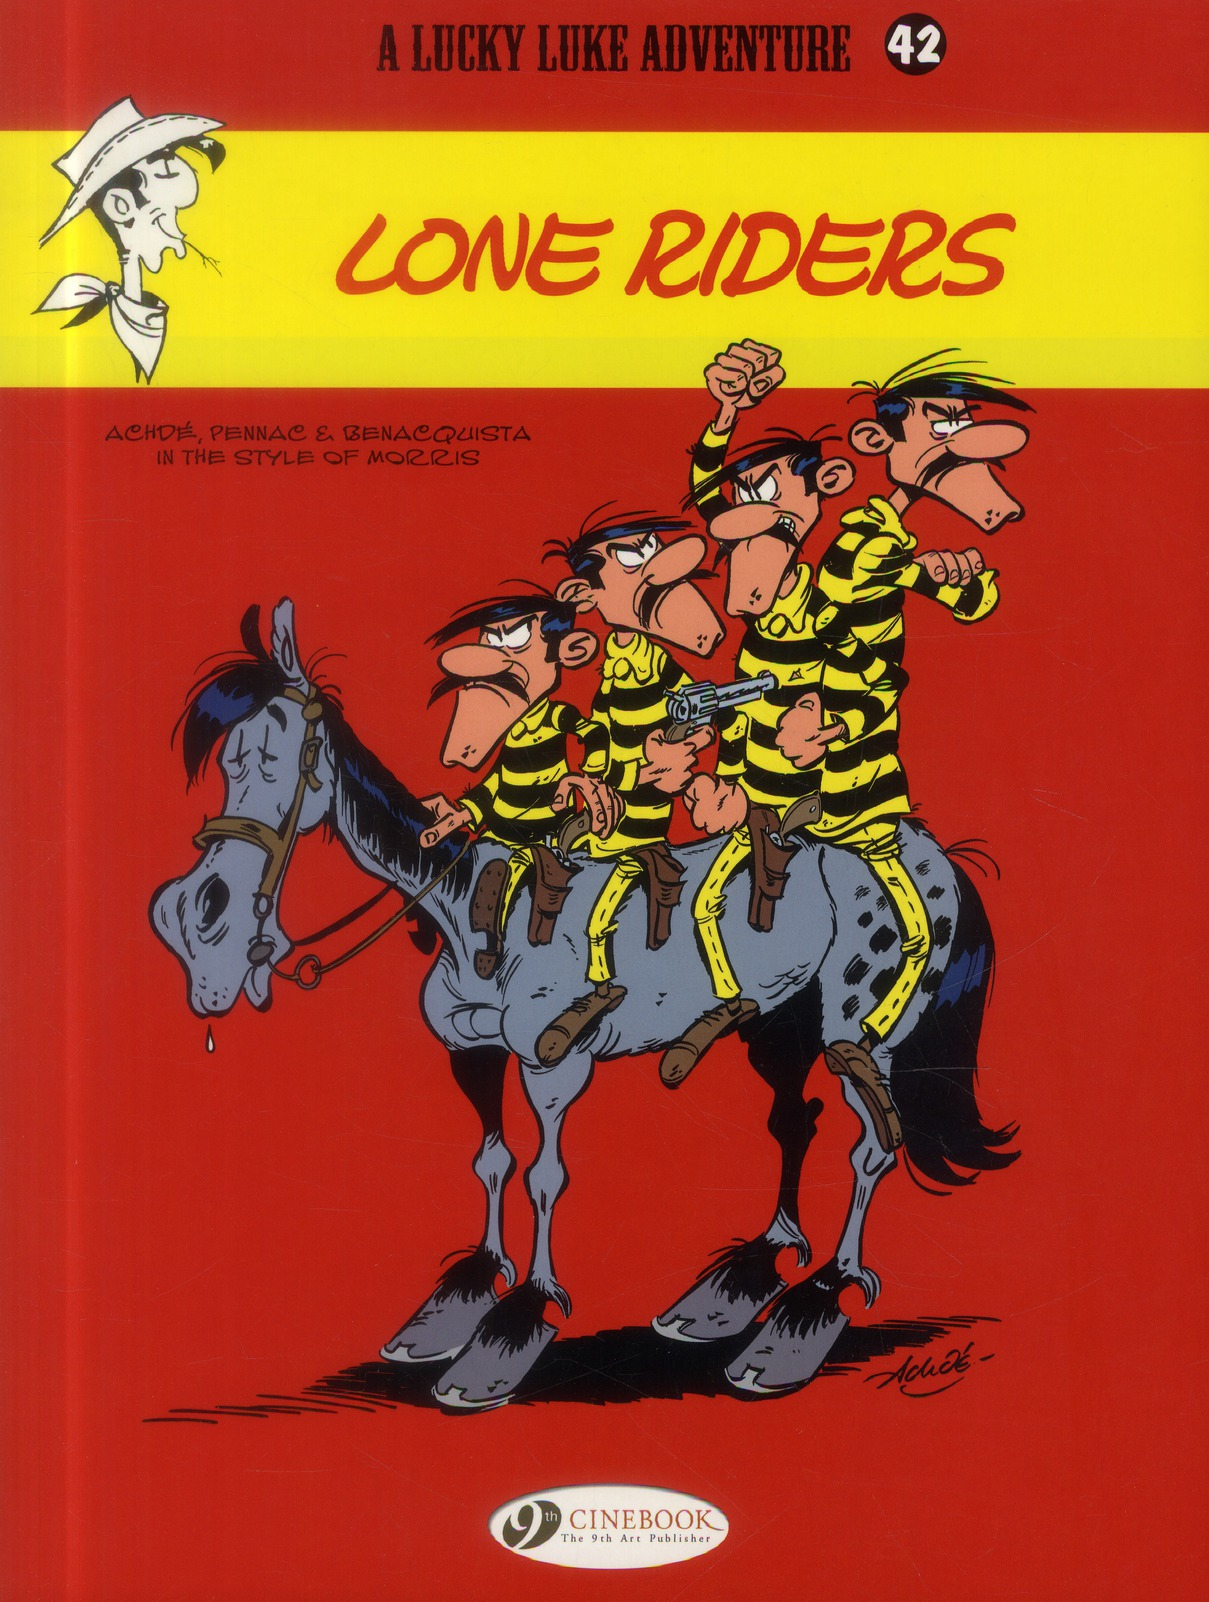 LUCKY LUKE - TOME 42 LONE RIDERS - VOL42